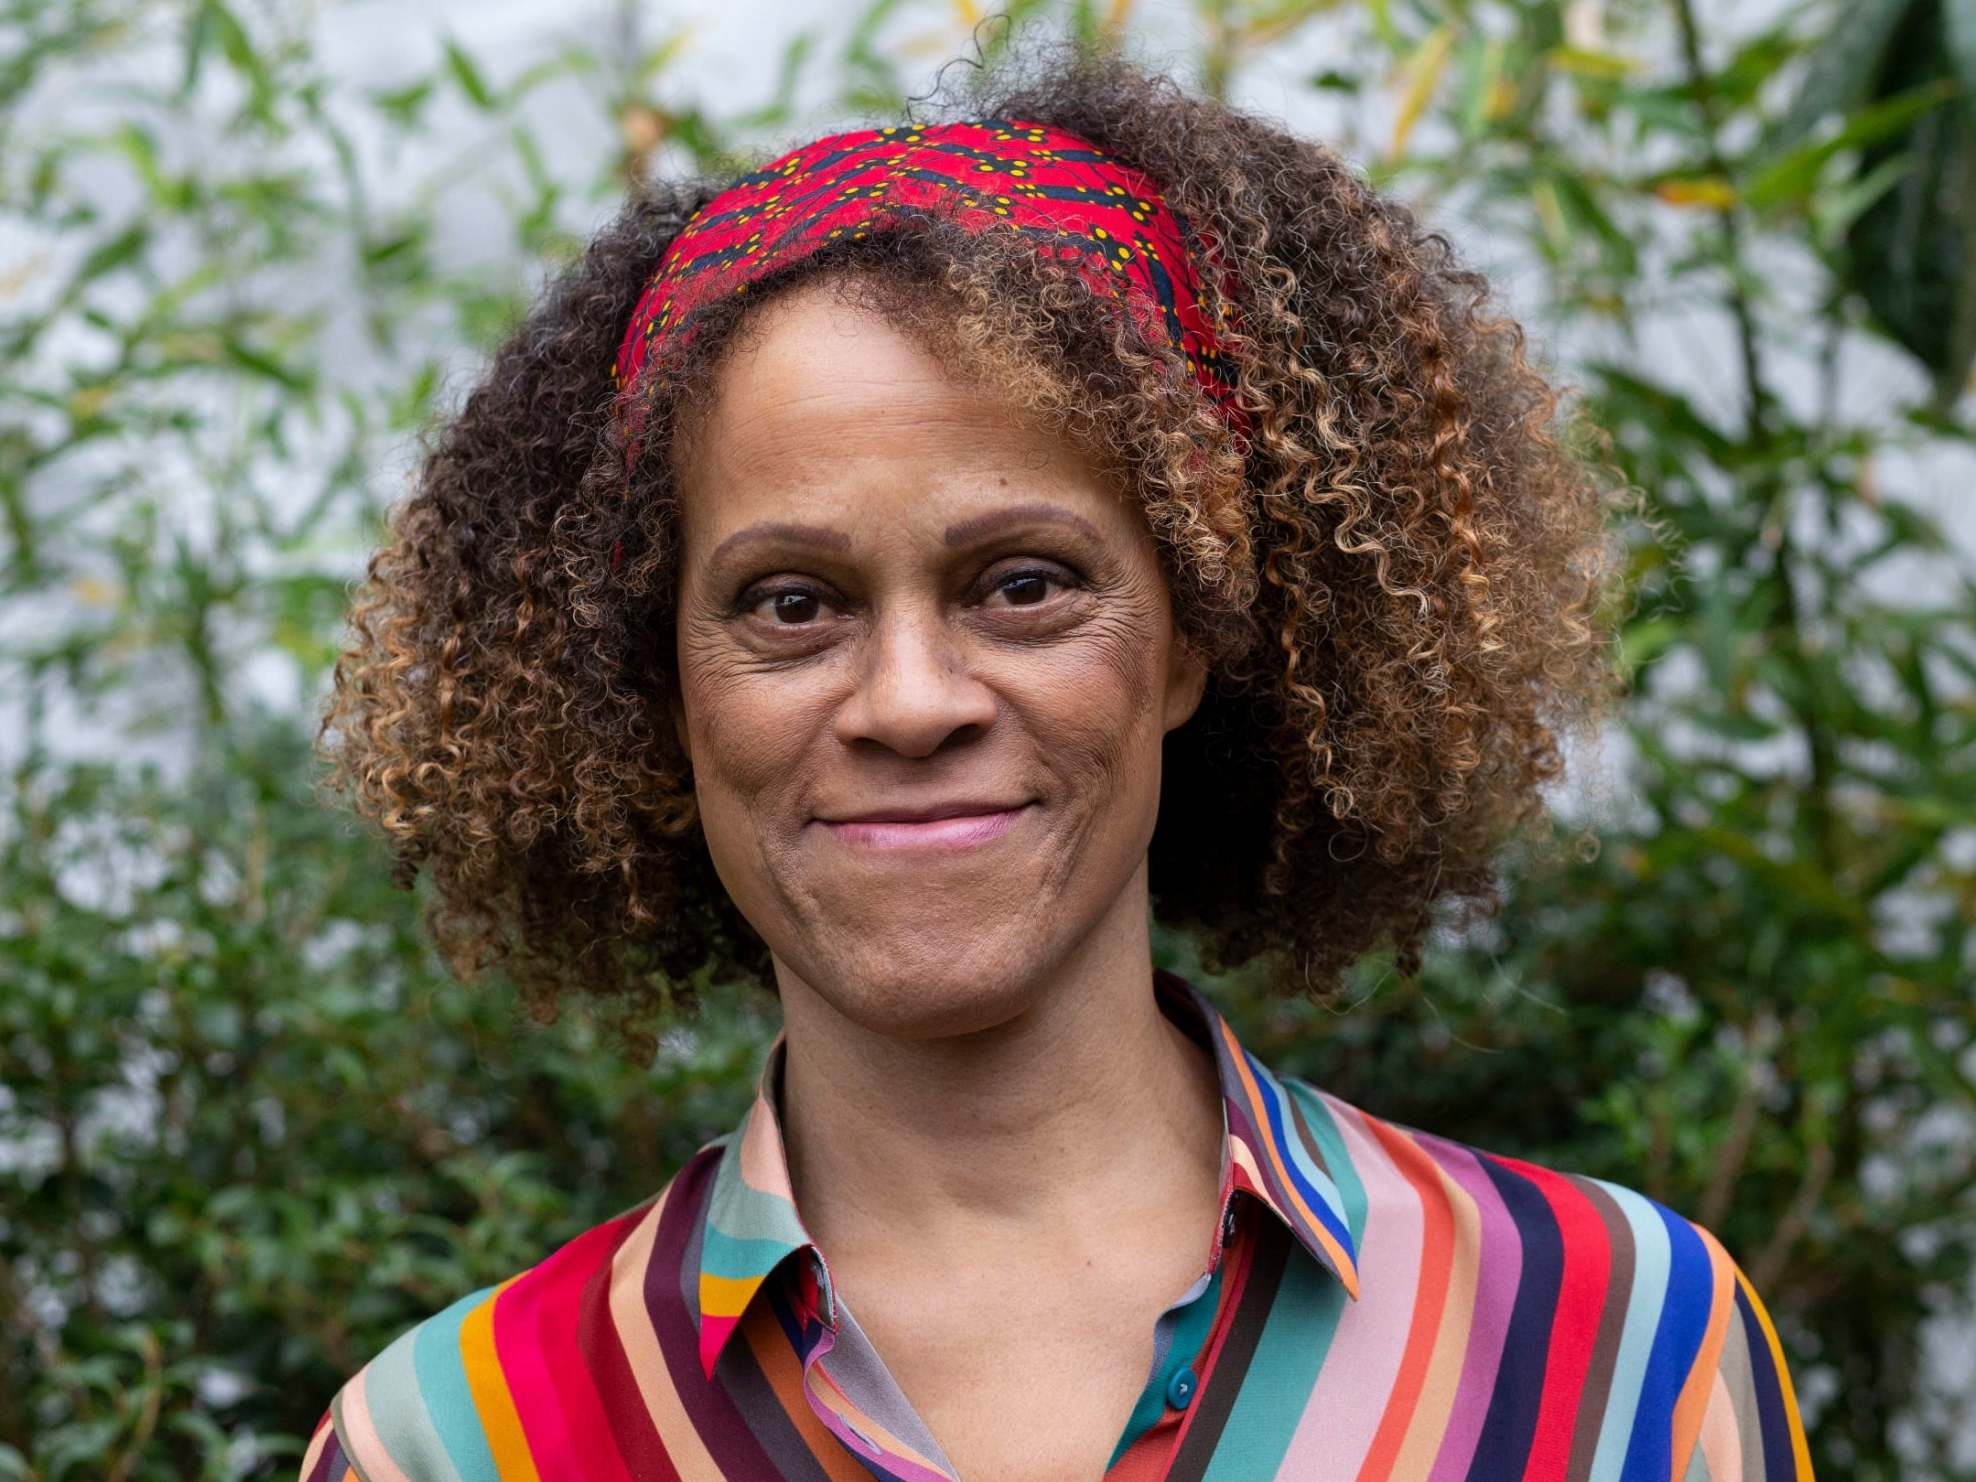 Booker Prize winner Bernardine Evaristo calls out BBC for 'removing my name from history'